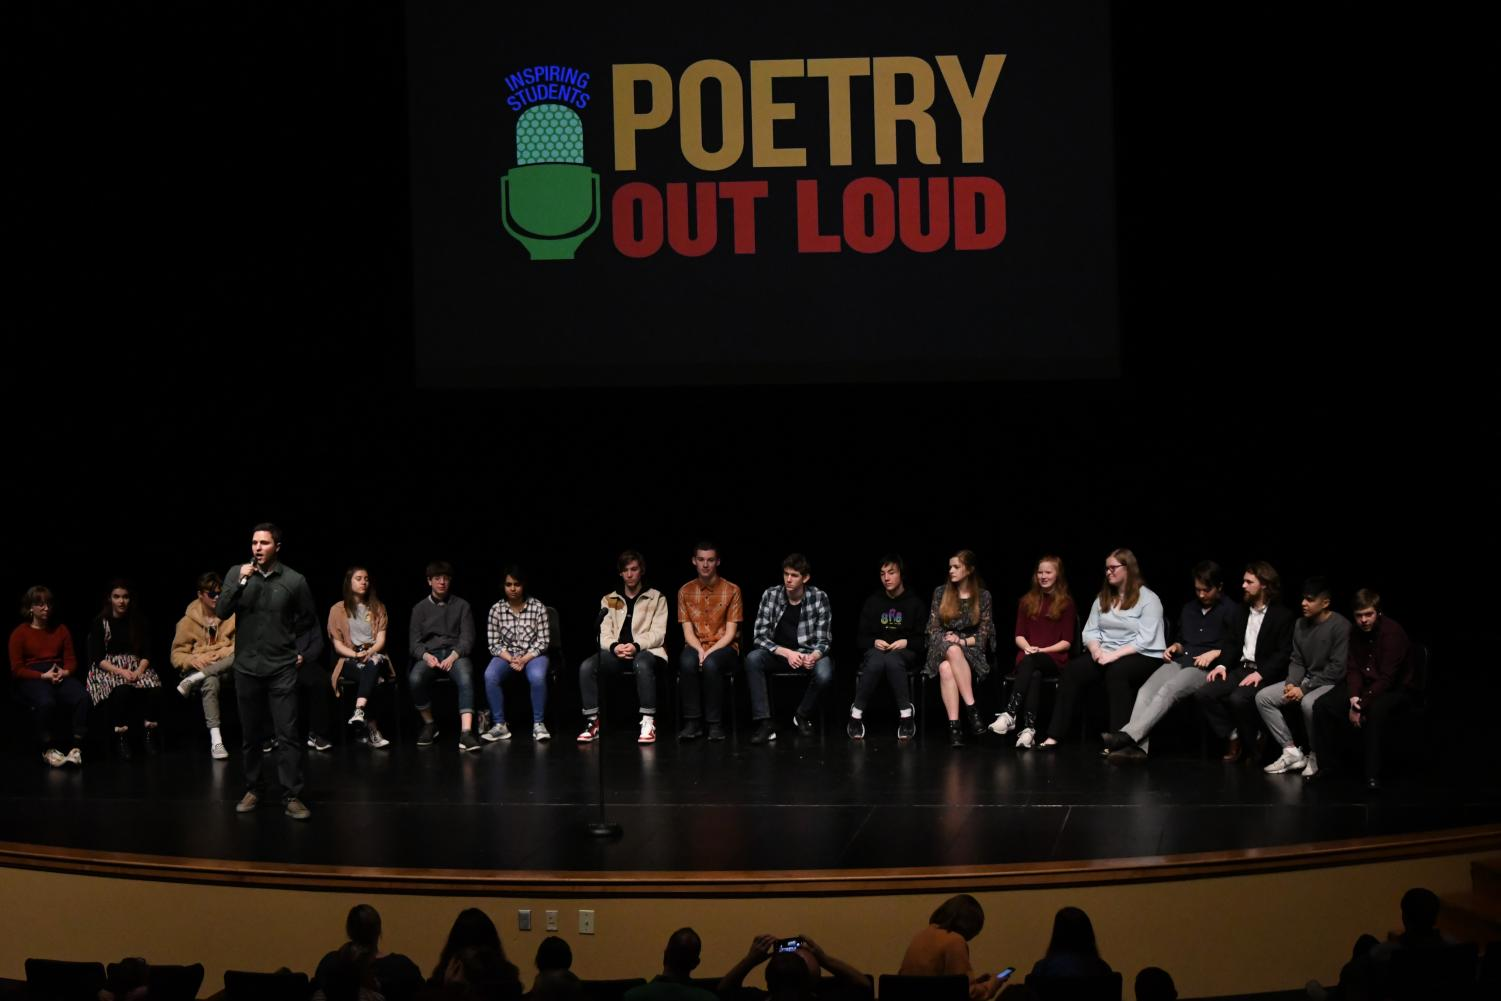 18+students+recited+poems+in+competition+to+represent+West+Linn+in+the+regional+poetry+out+loud+competition.